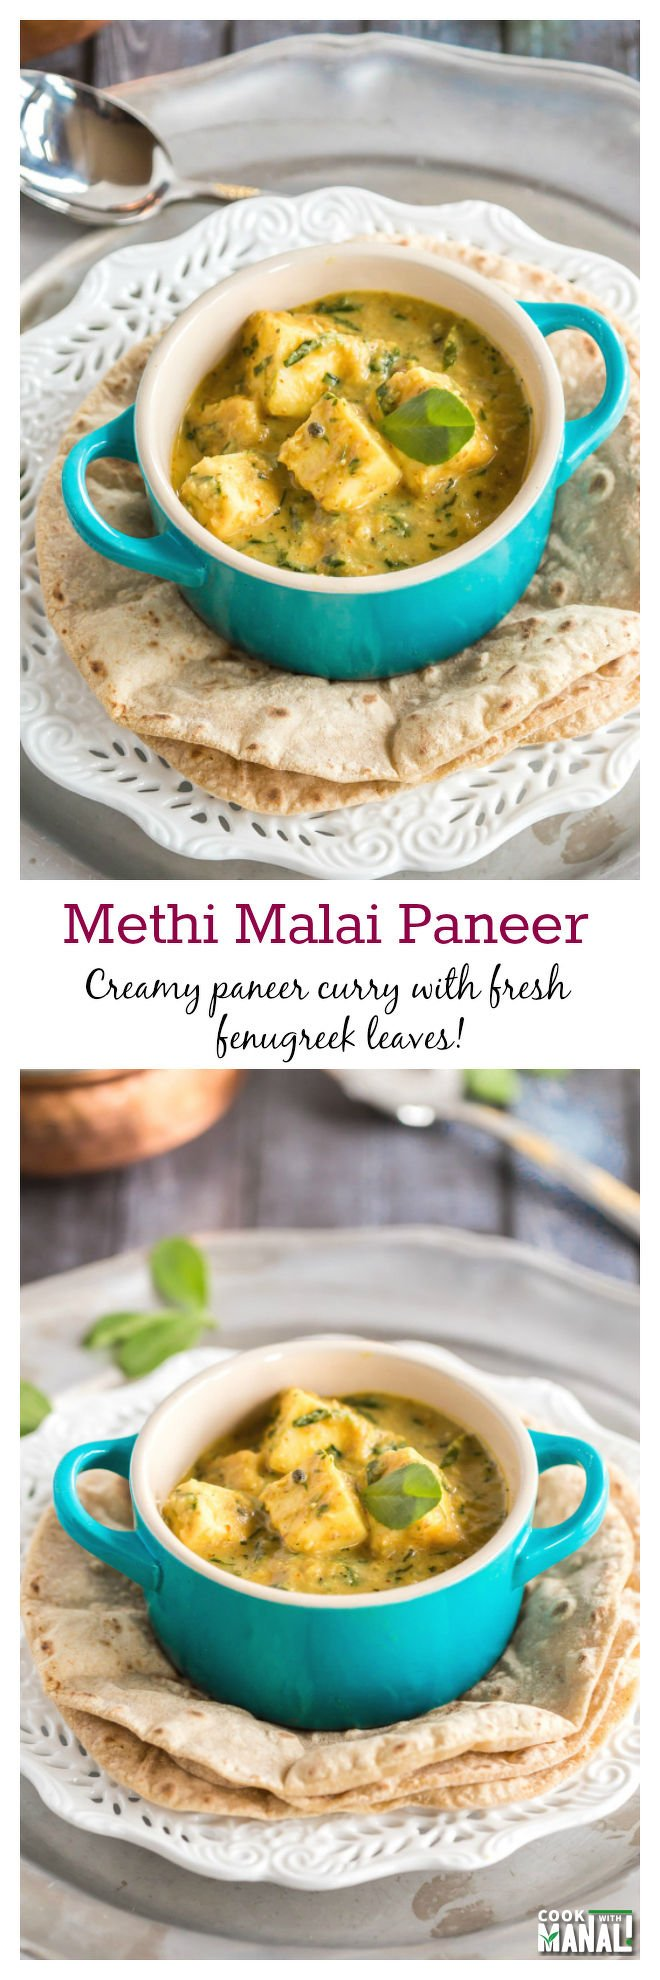 Methi Malai Paneer Collage